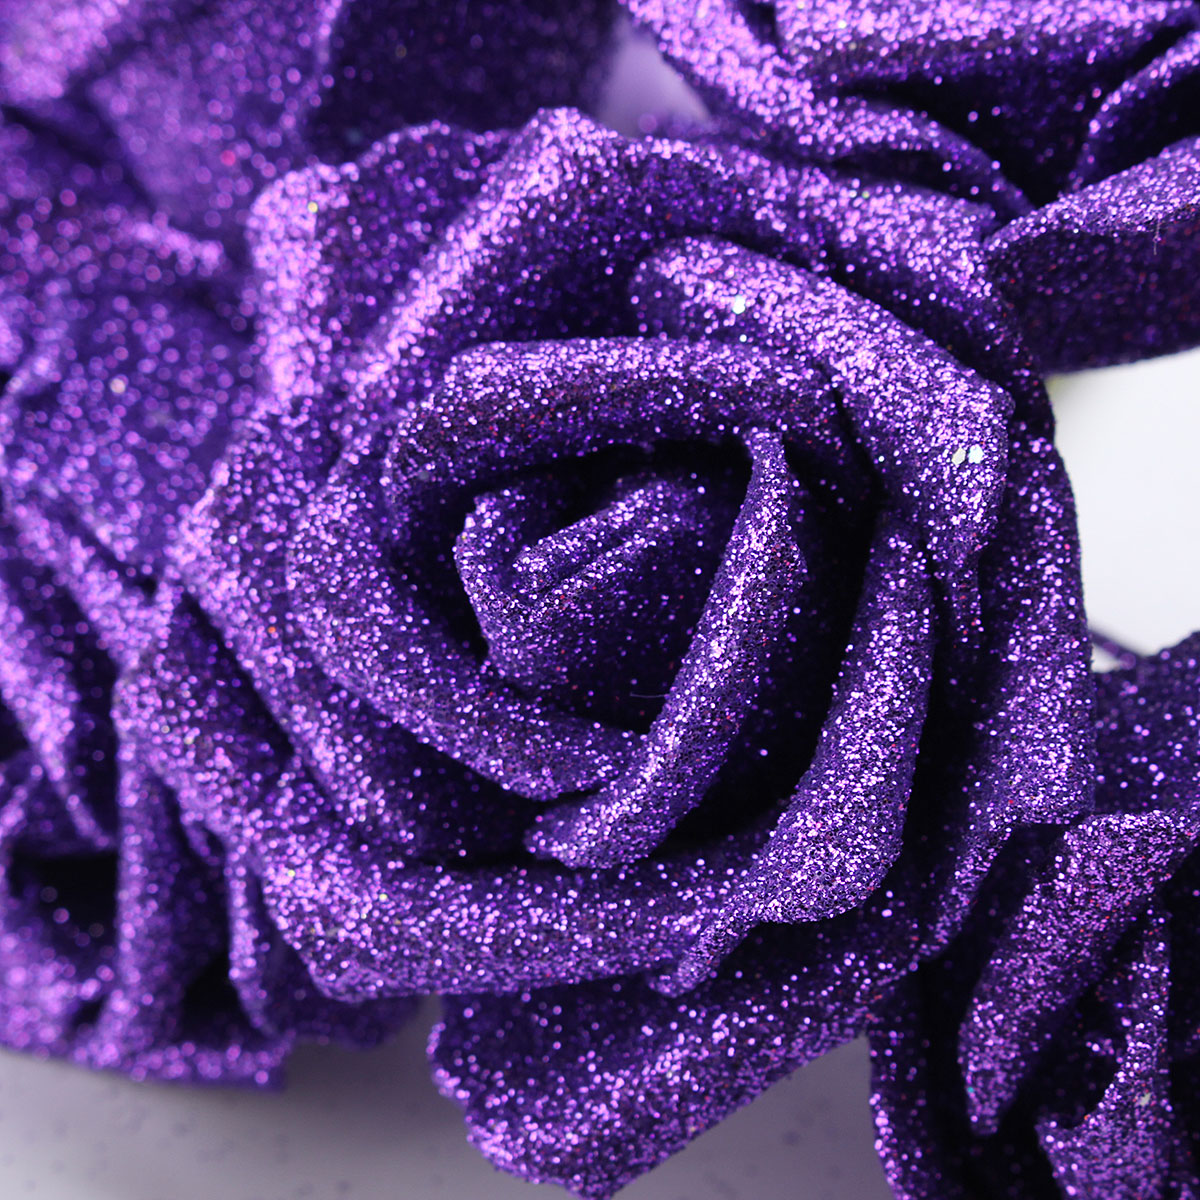 7Pcs Artificial Bouquet Glitter Foam Artificial Flowers Wedding Bridal Party Decor DIY Rose